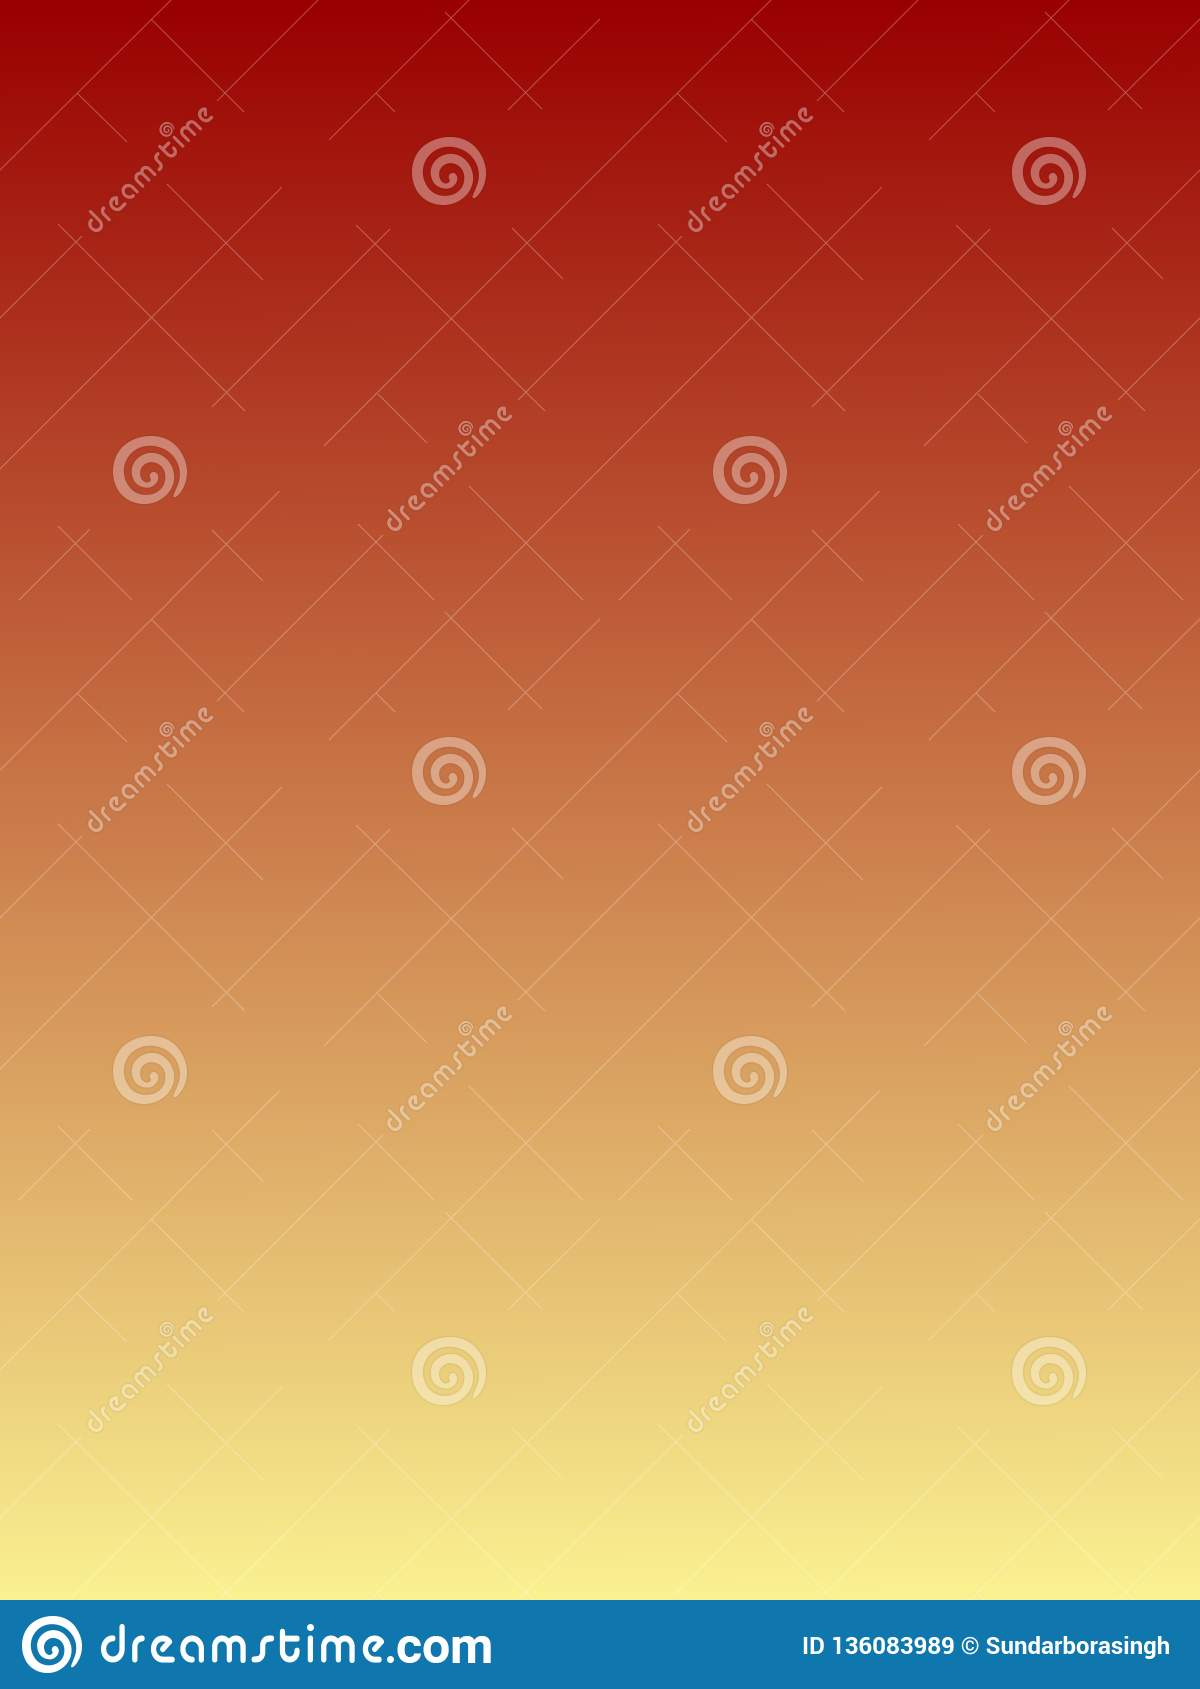 Phone Wallpaper And Website Background Stock Illustration Illustration Of Cheerful Concept 136083989